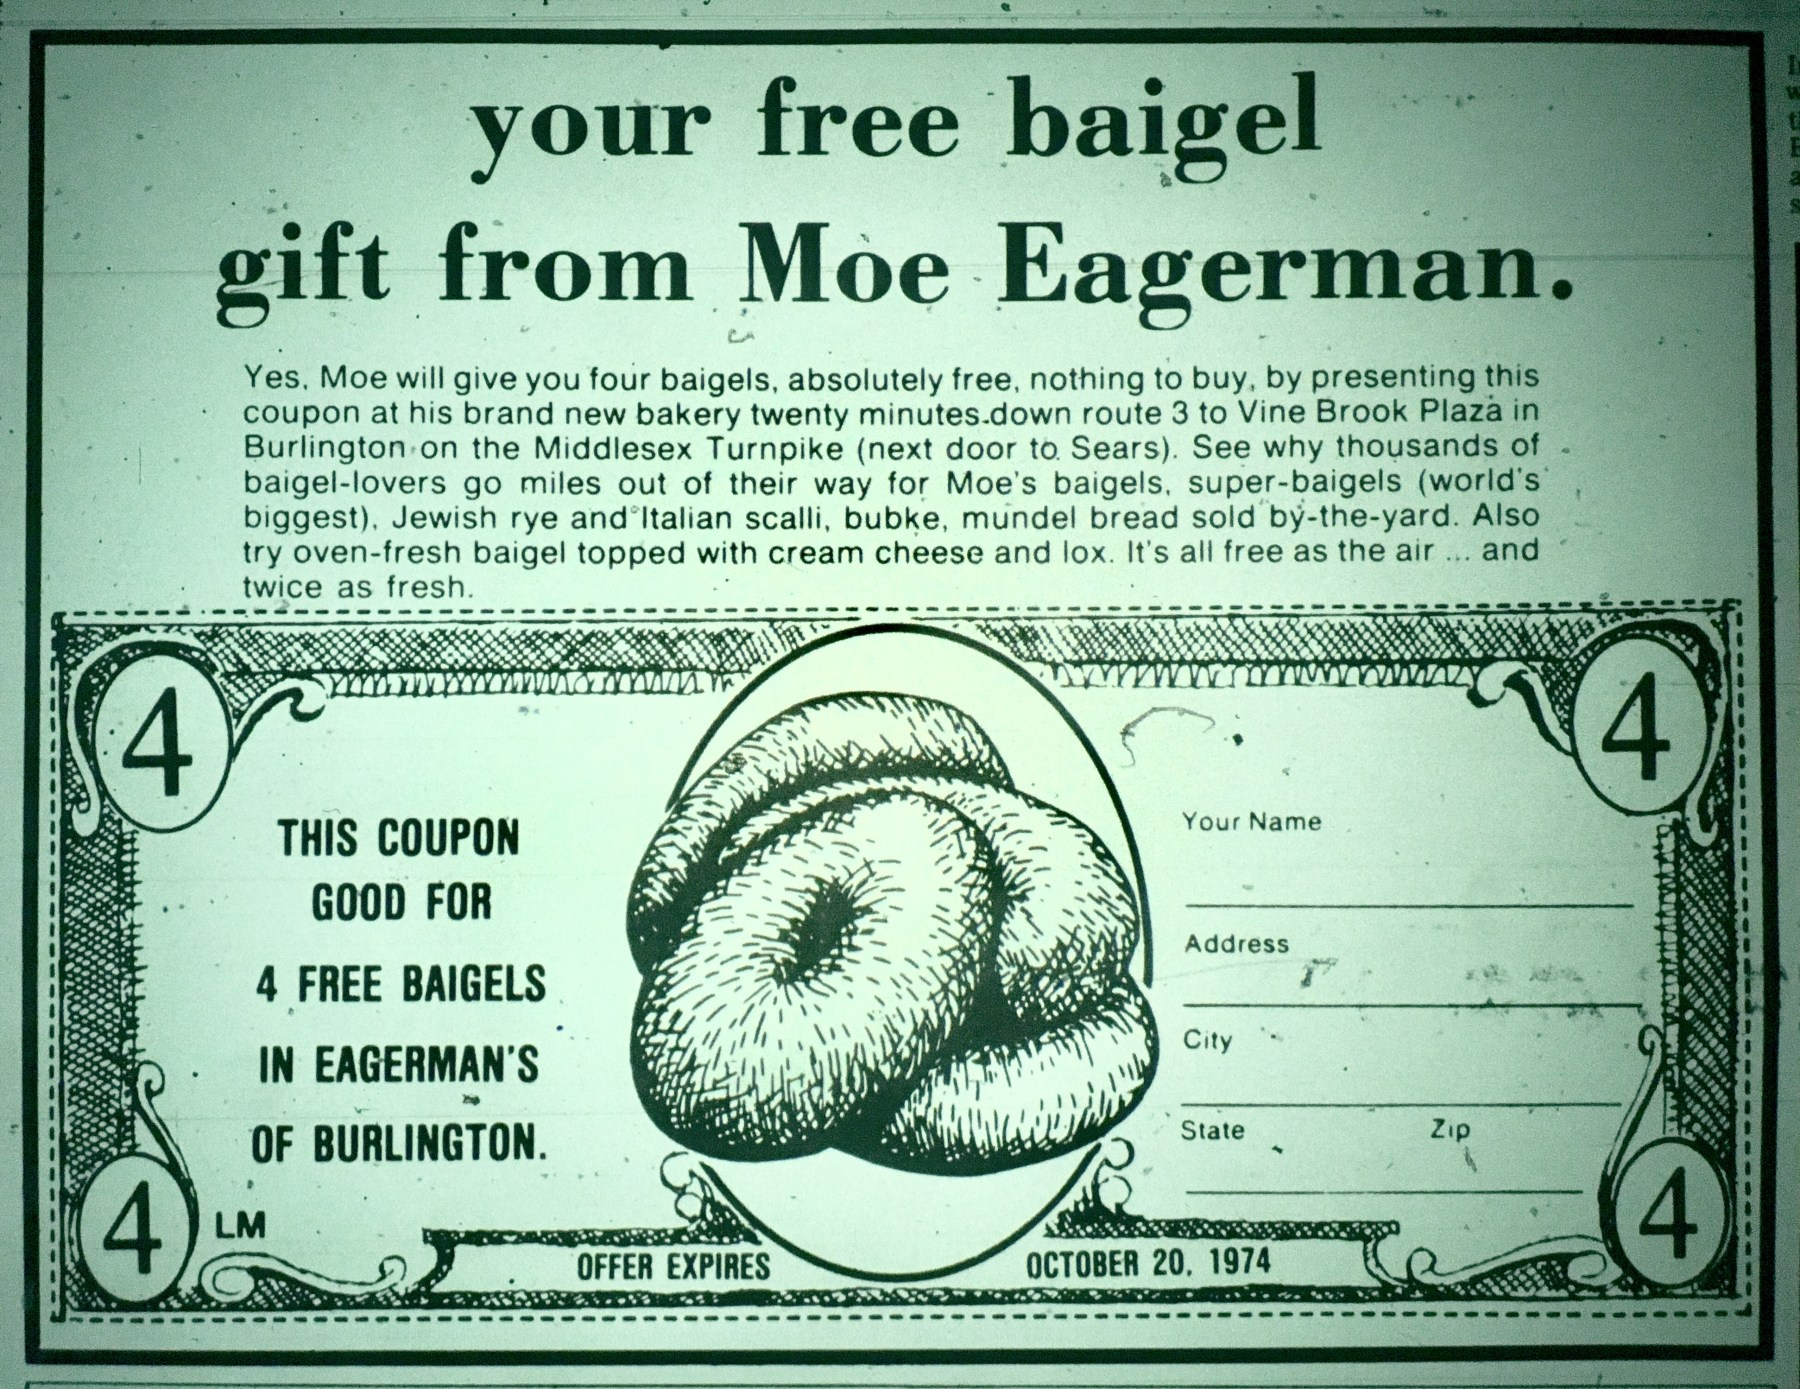 Moe Eagerman's baigels